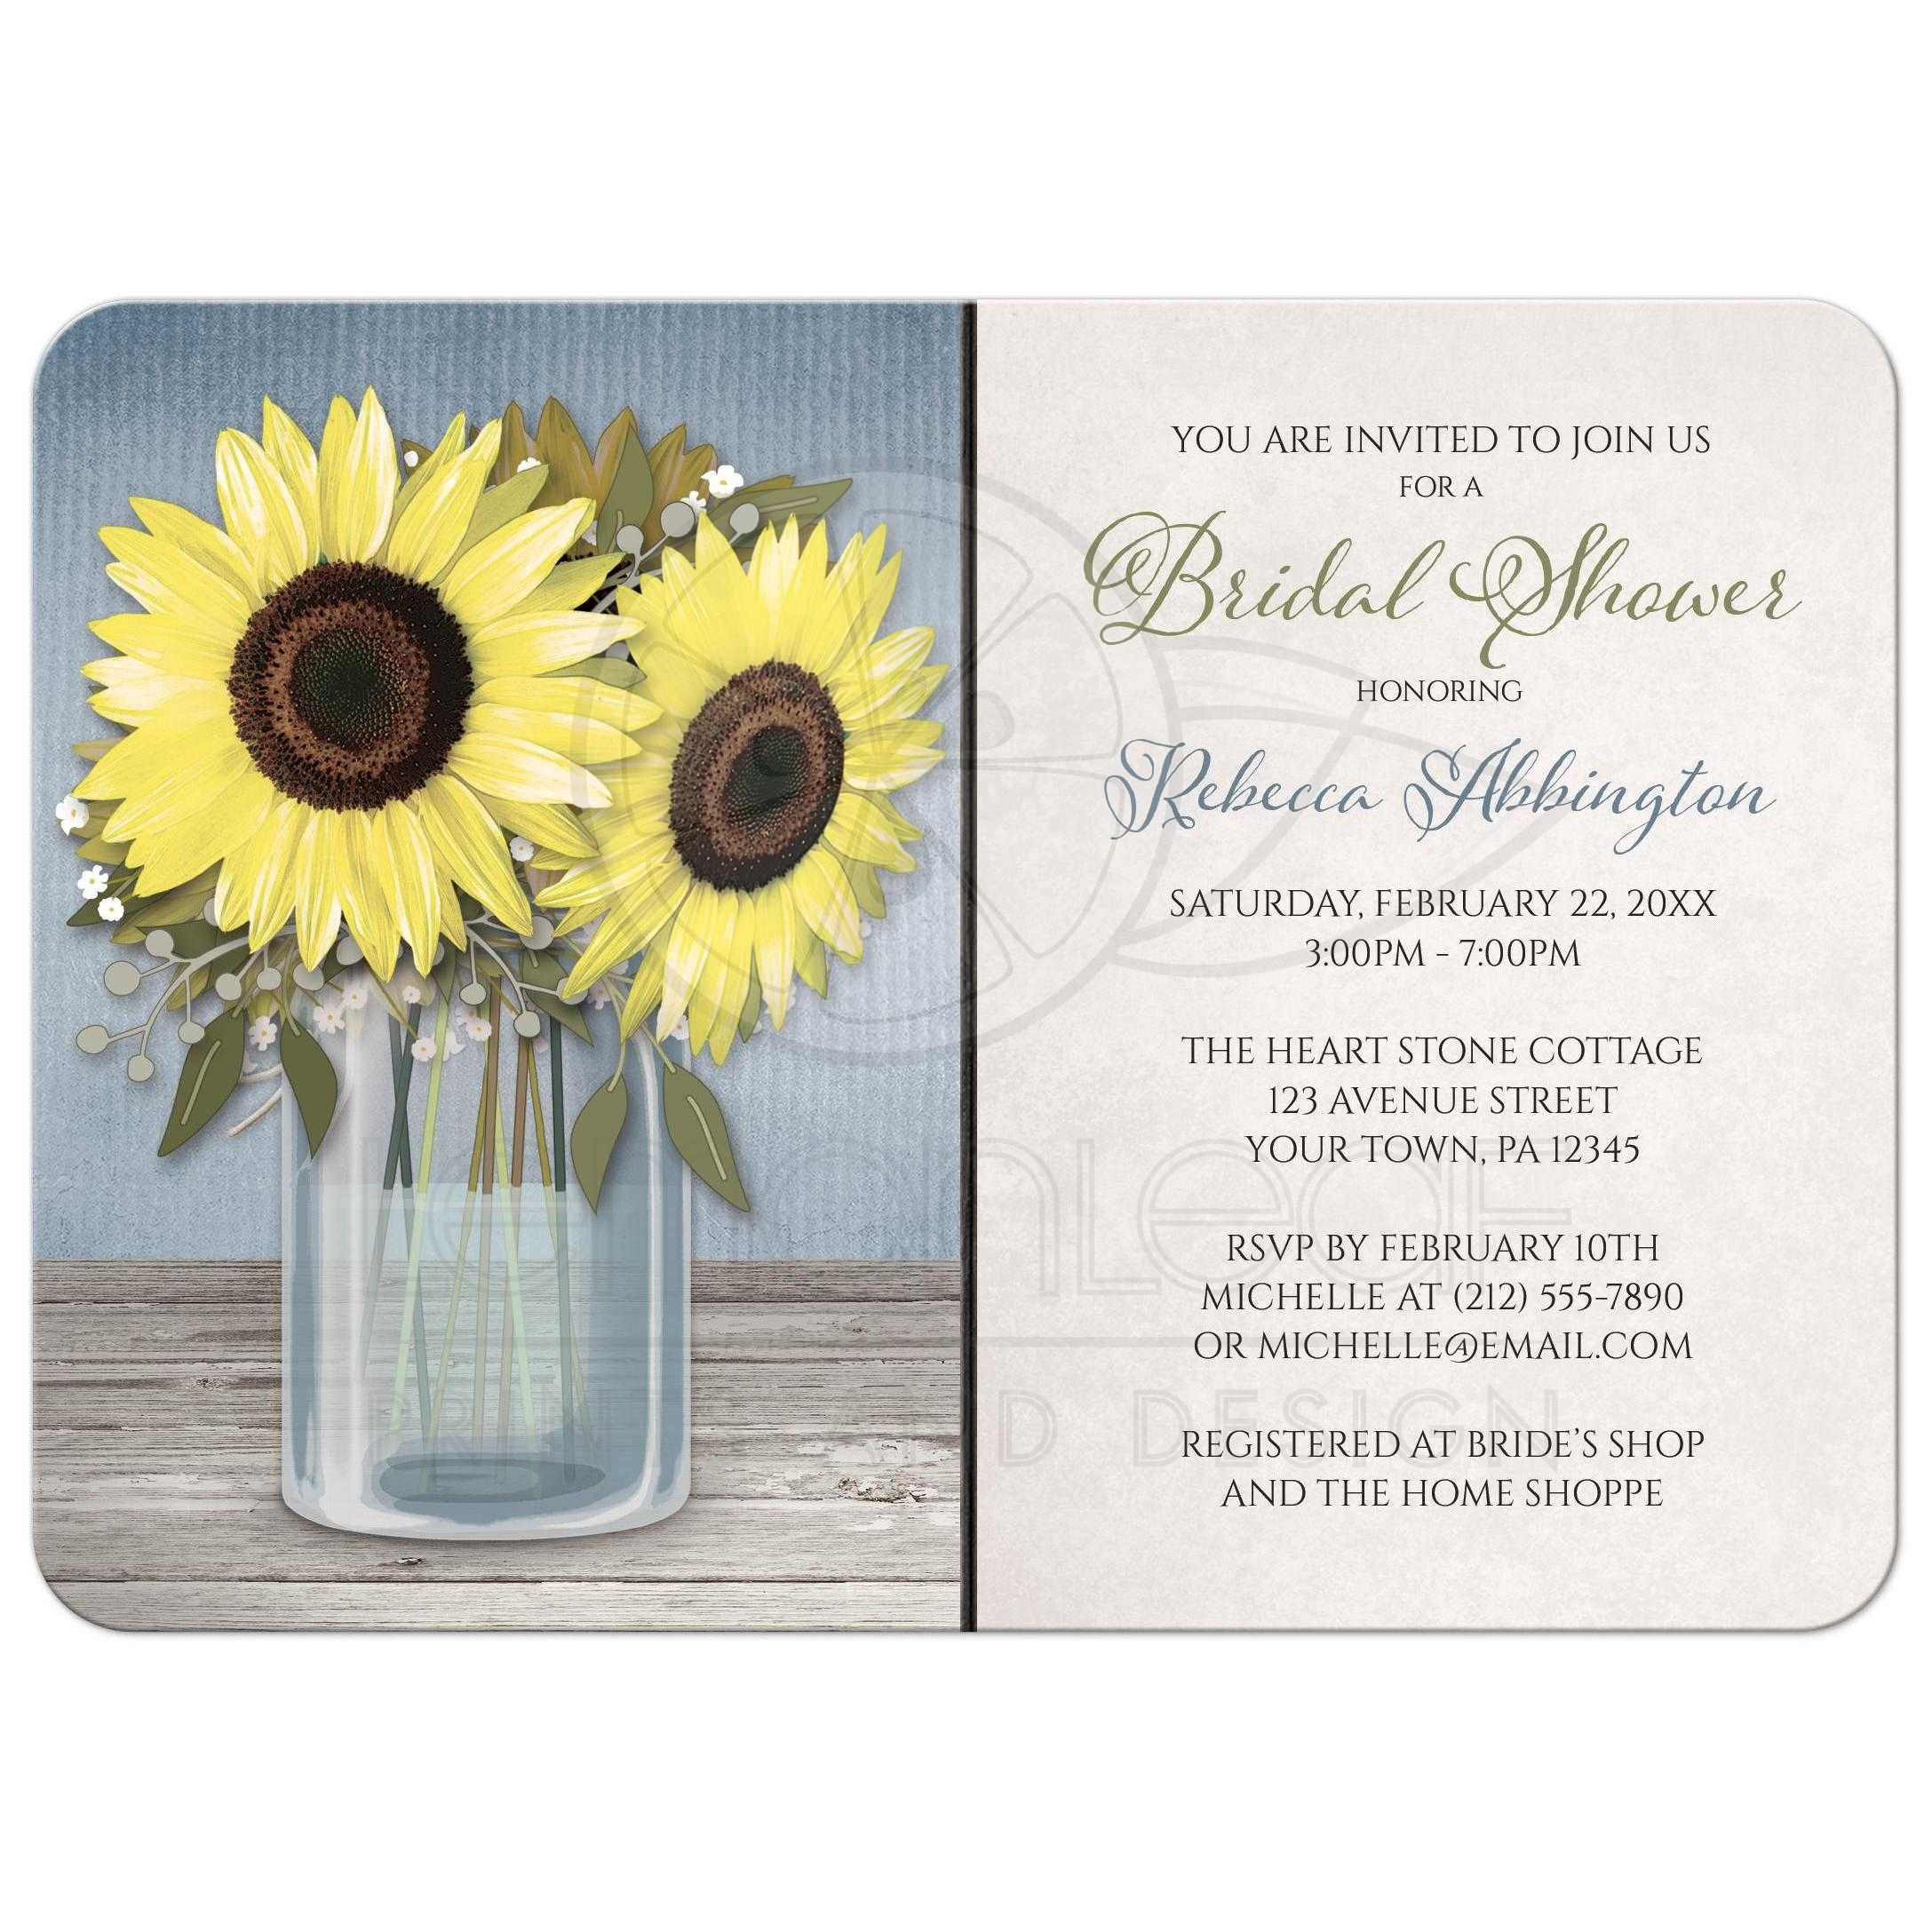 Bridal shower invitations rustic sunflower blue mason jar filmwisefo